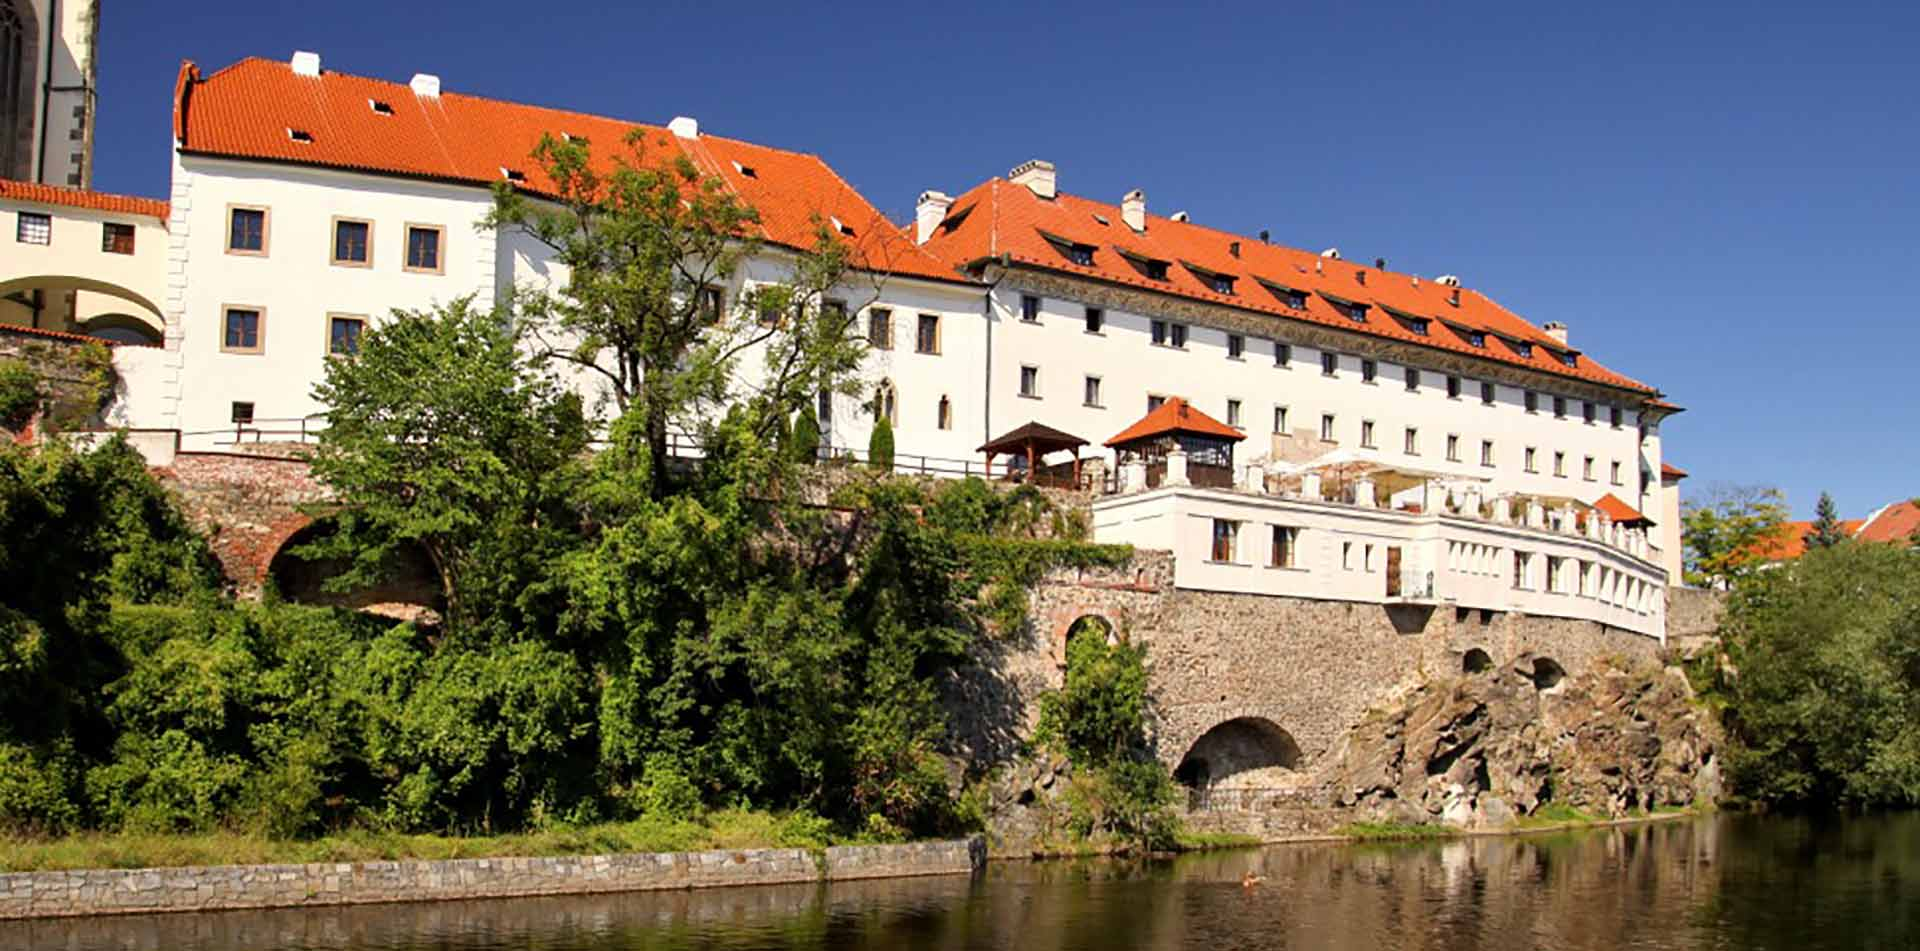 Hotel Ruze, Czech Republic